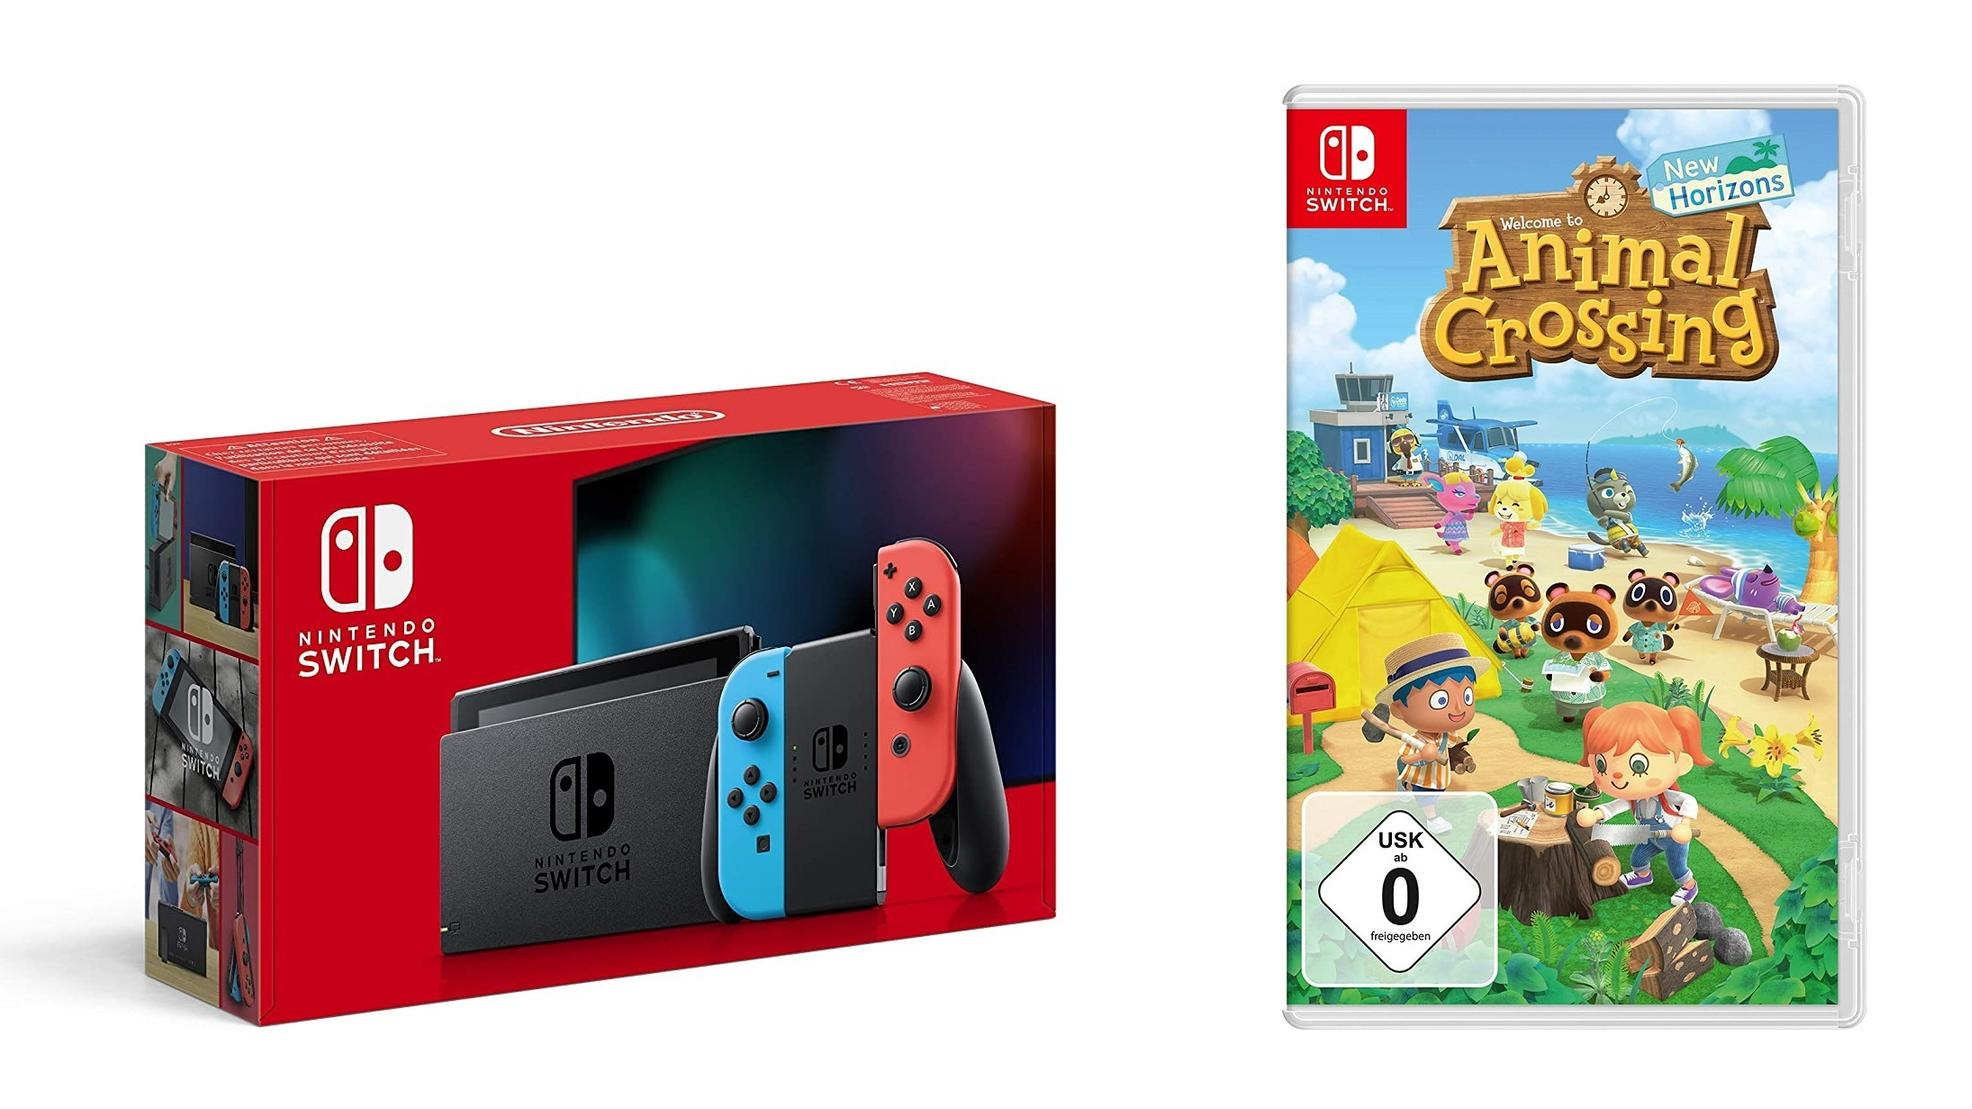 Switch mit Animal Crossing am Prime Day: Gutes Angebot?